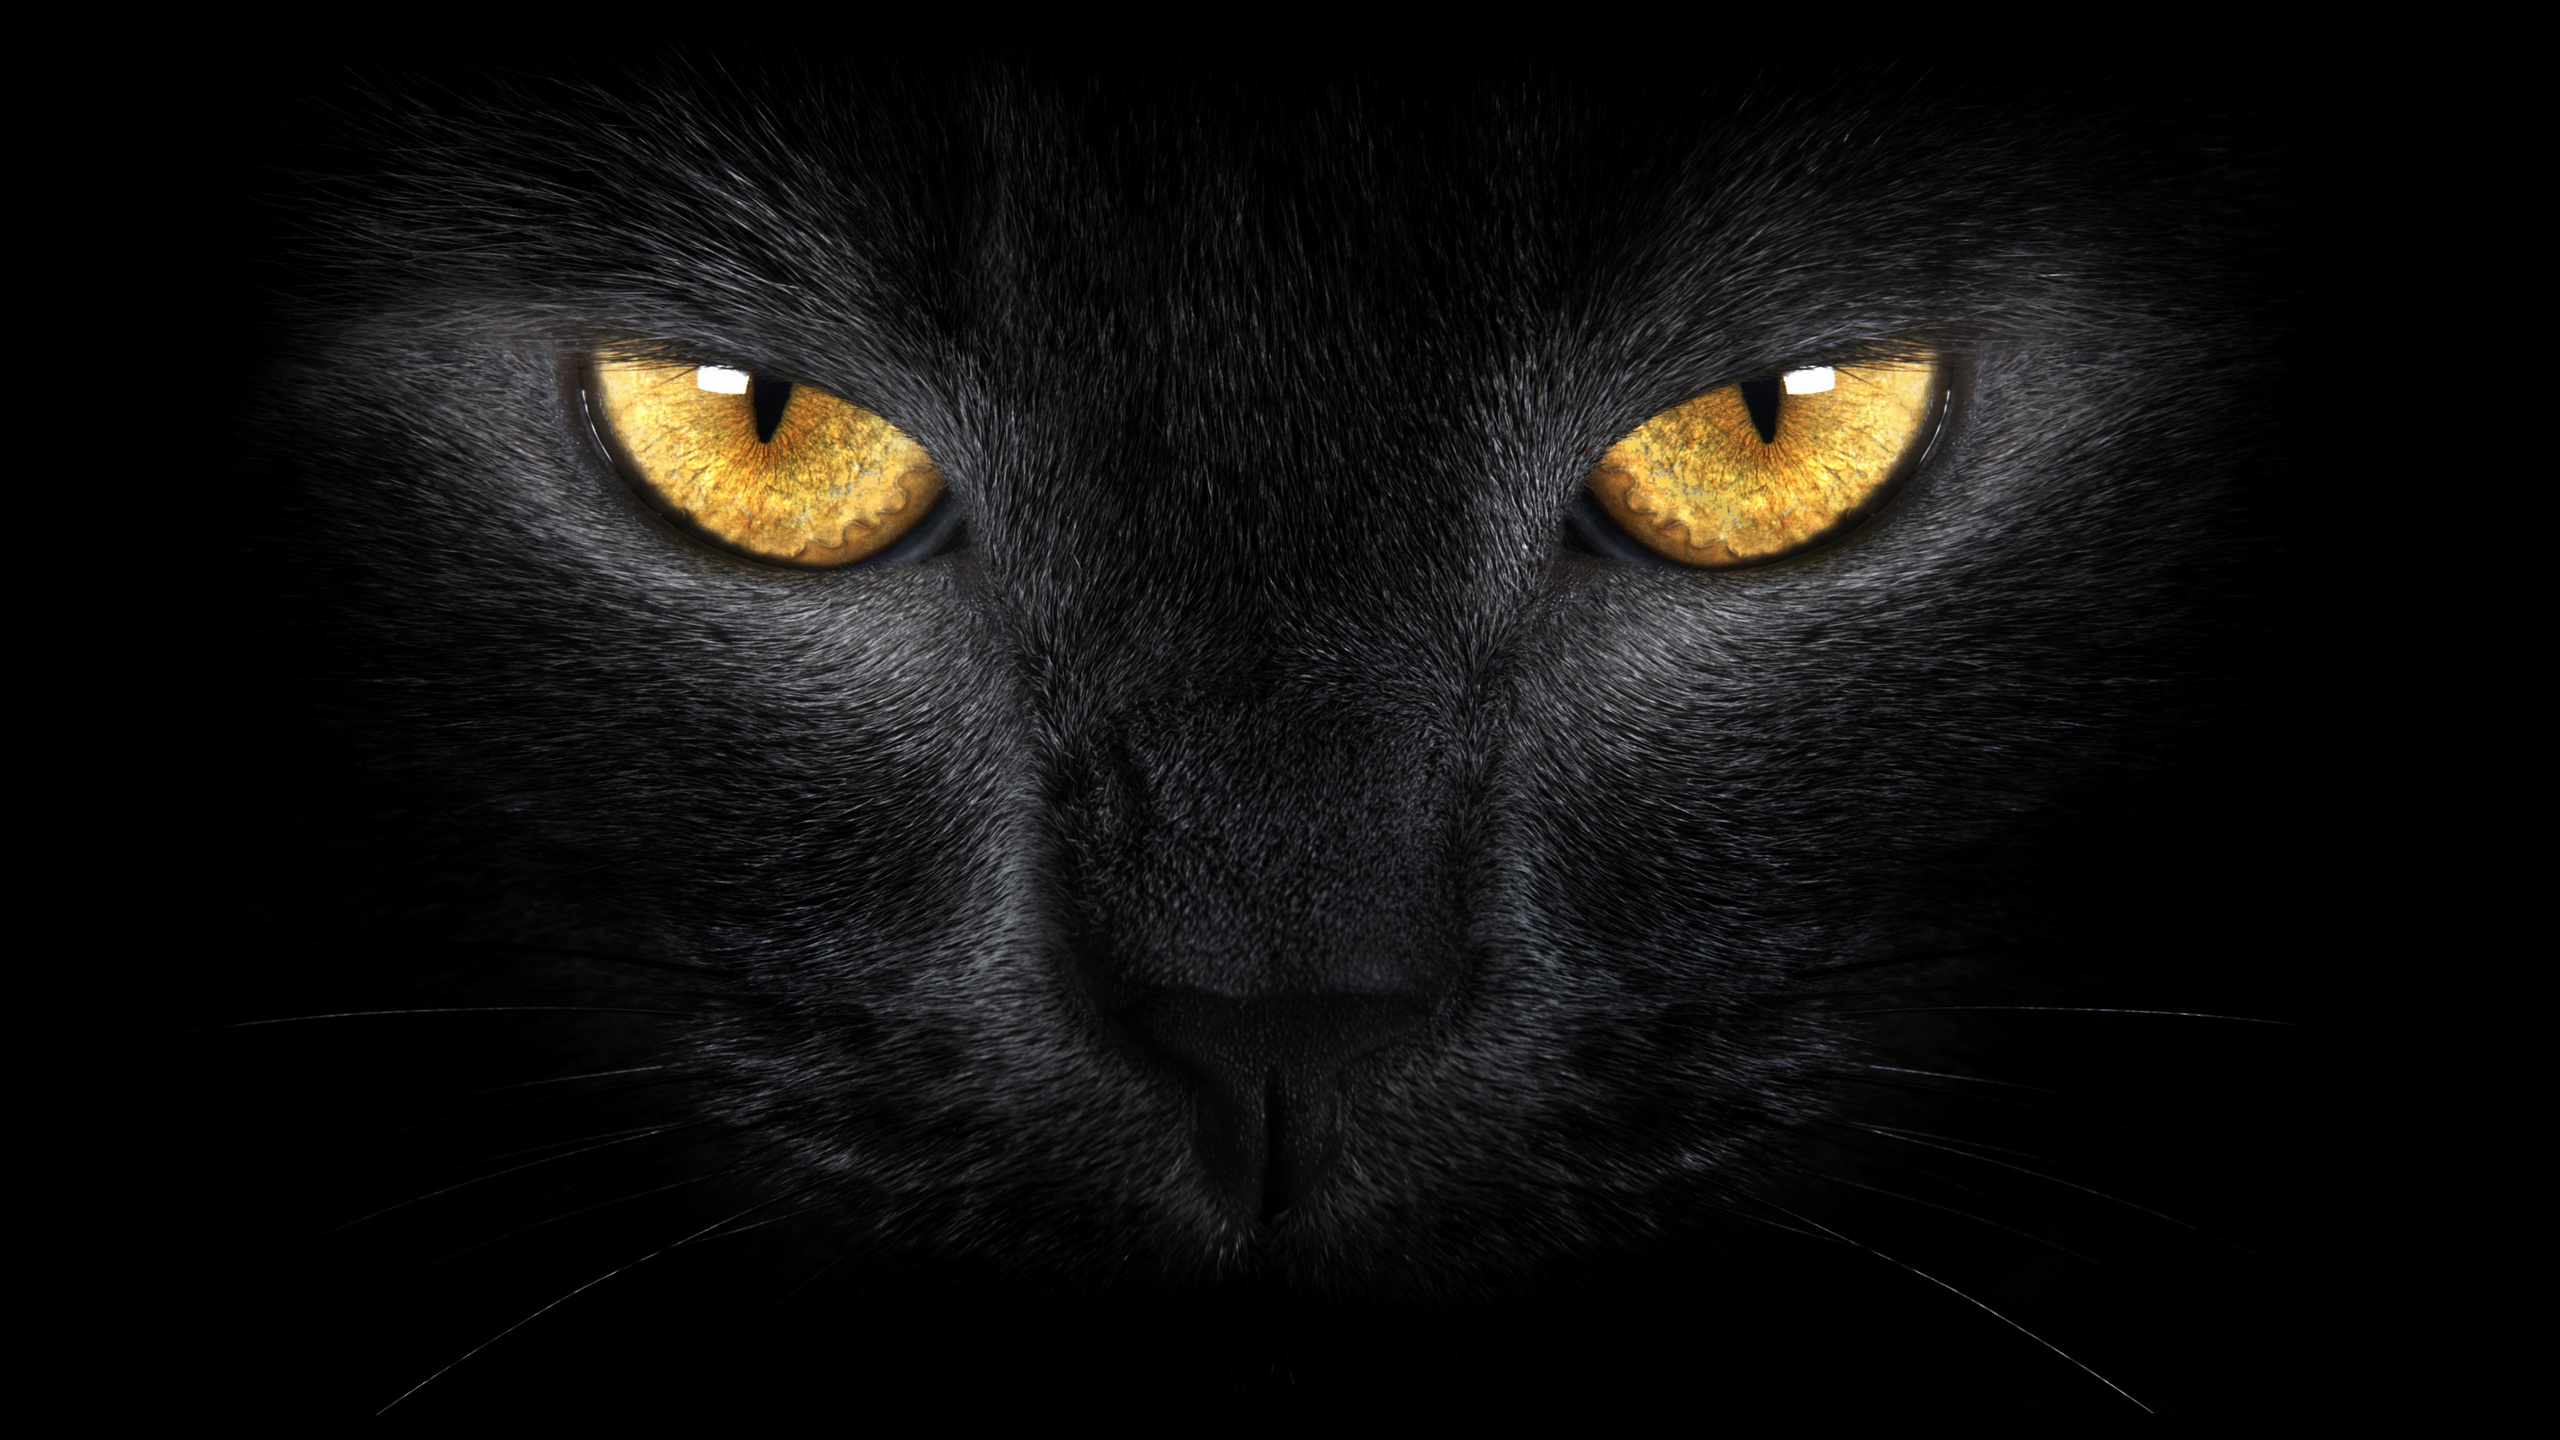 7104 cat hd wallpapers | background images - wallpaper abyss - page 2